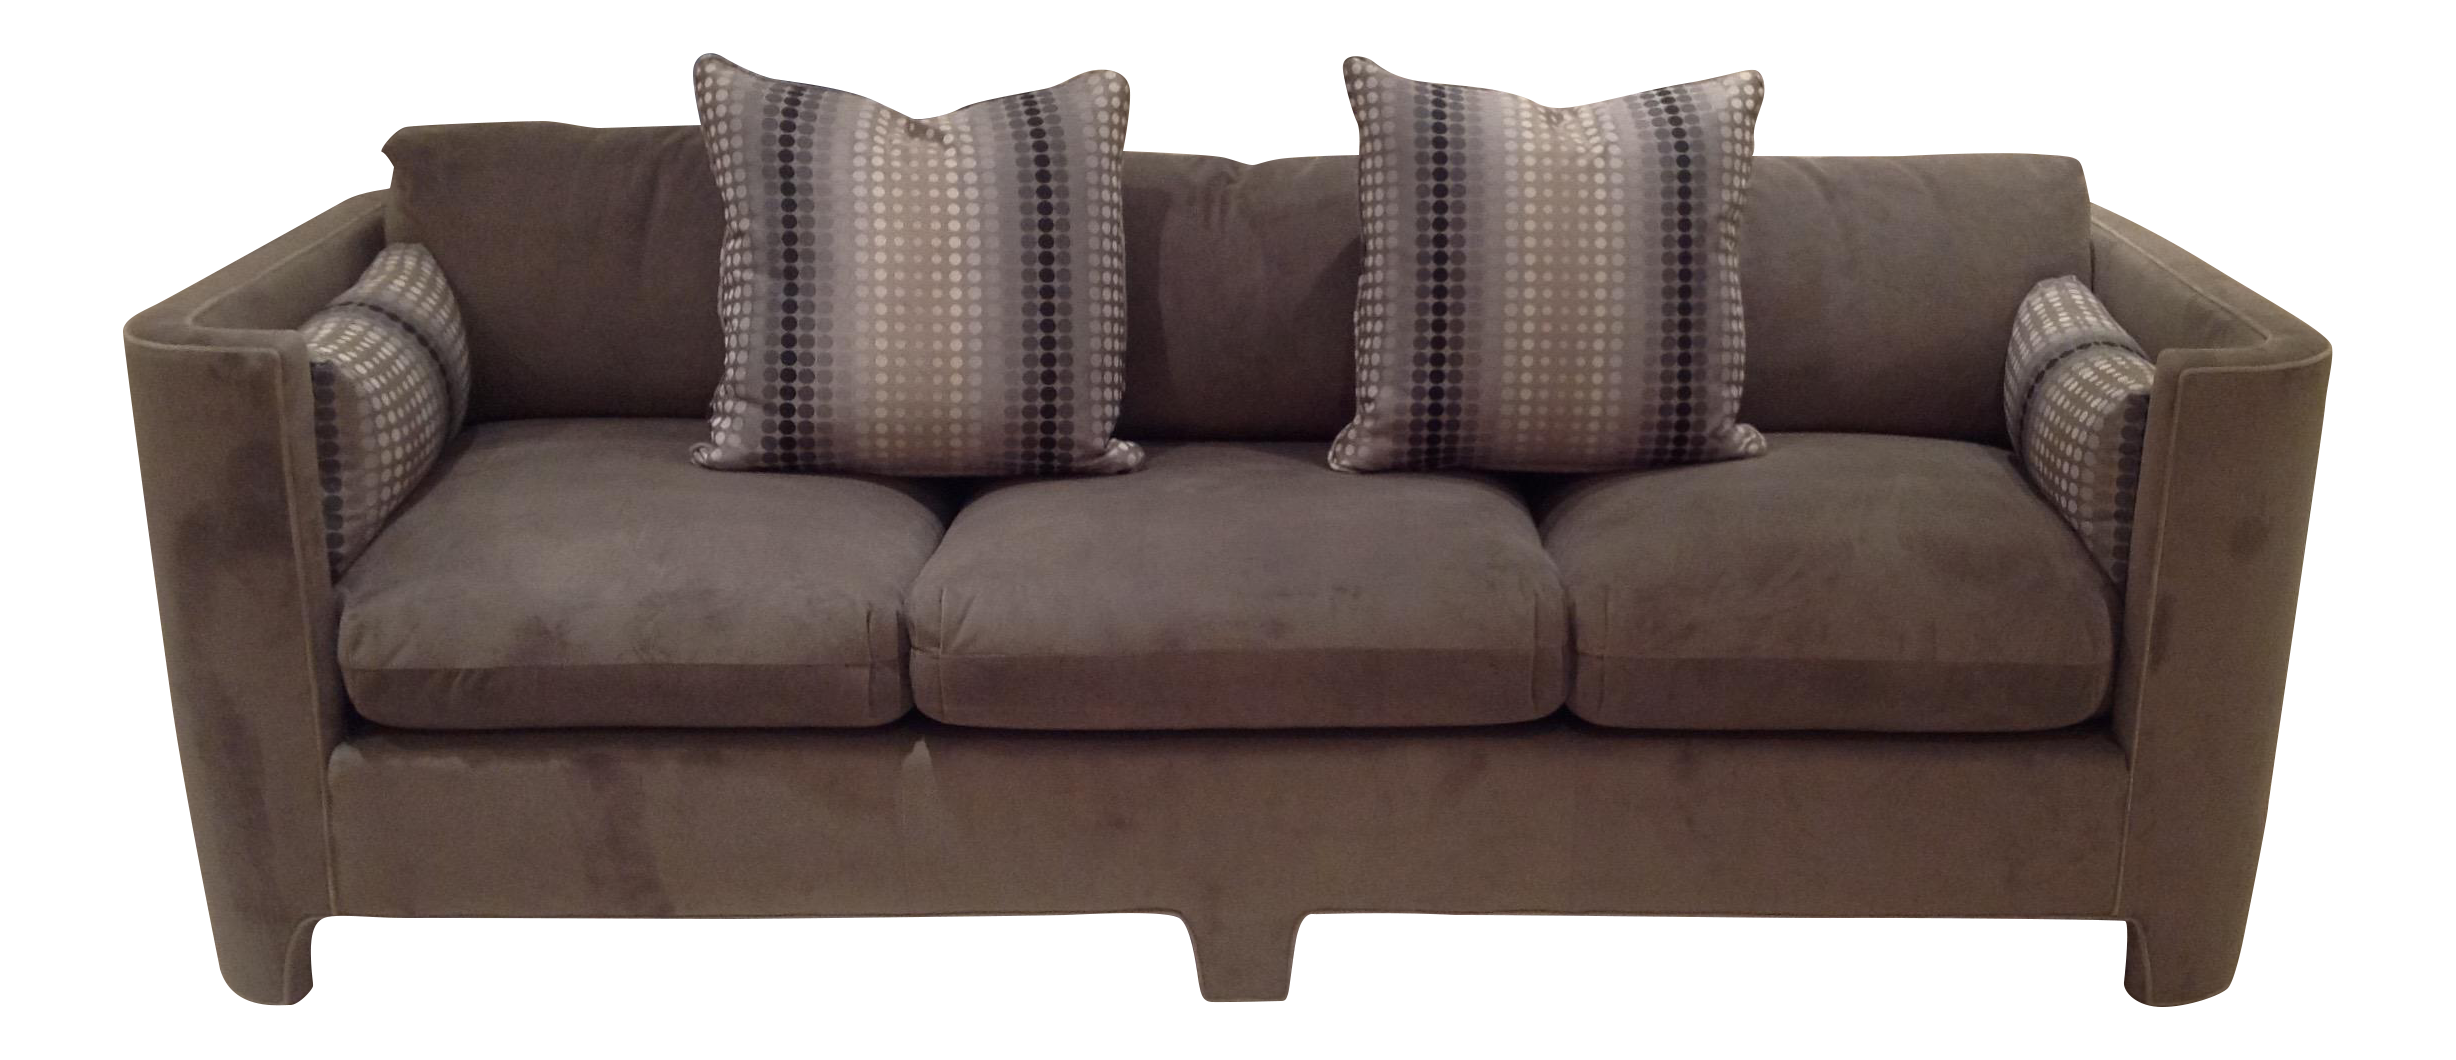 Delicieux Highland House Westover Sofa For Sale